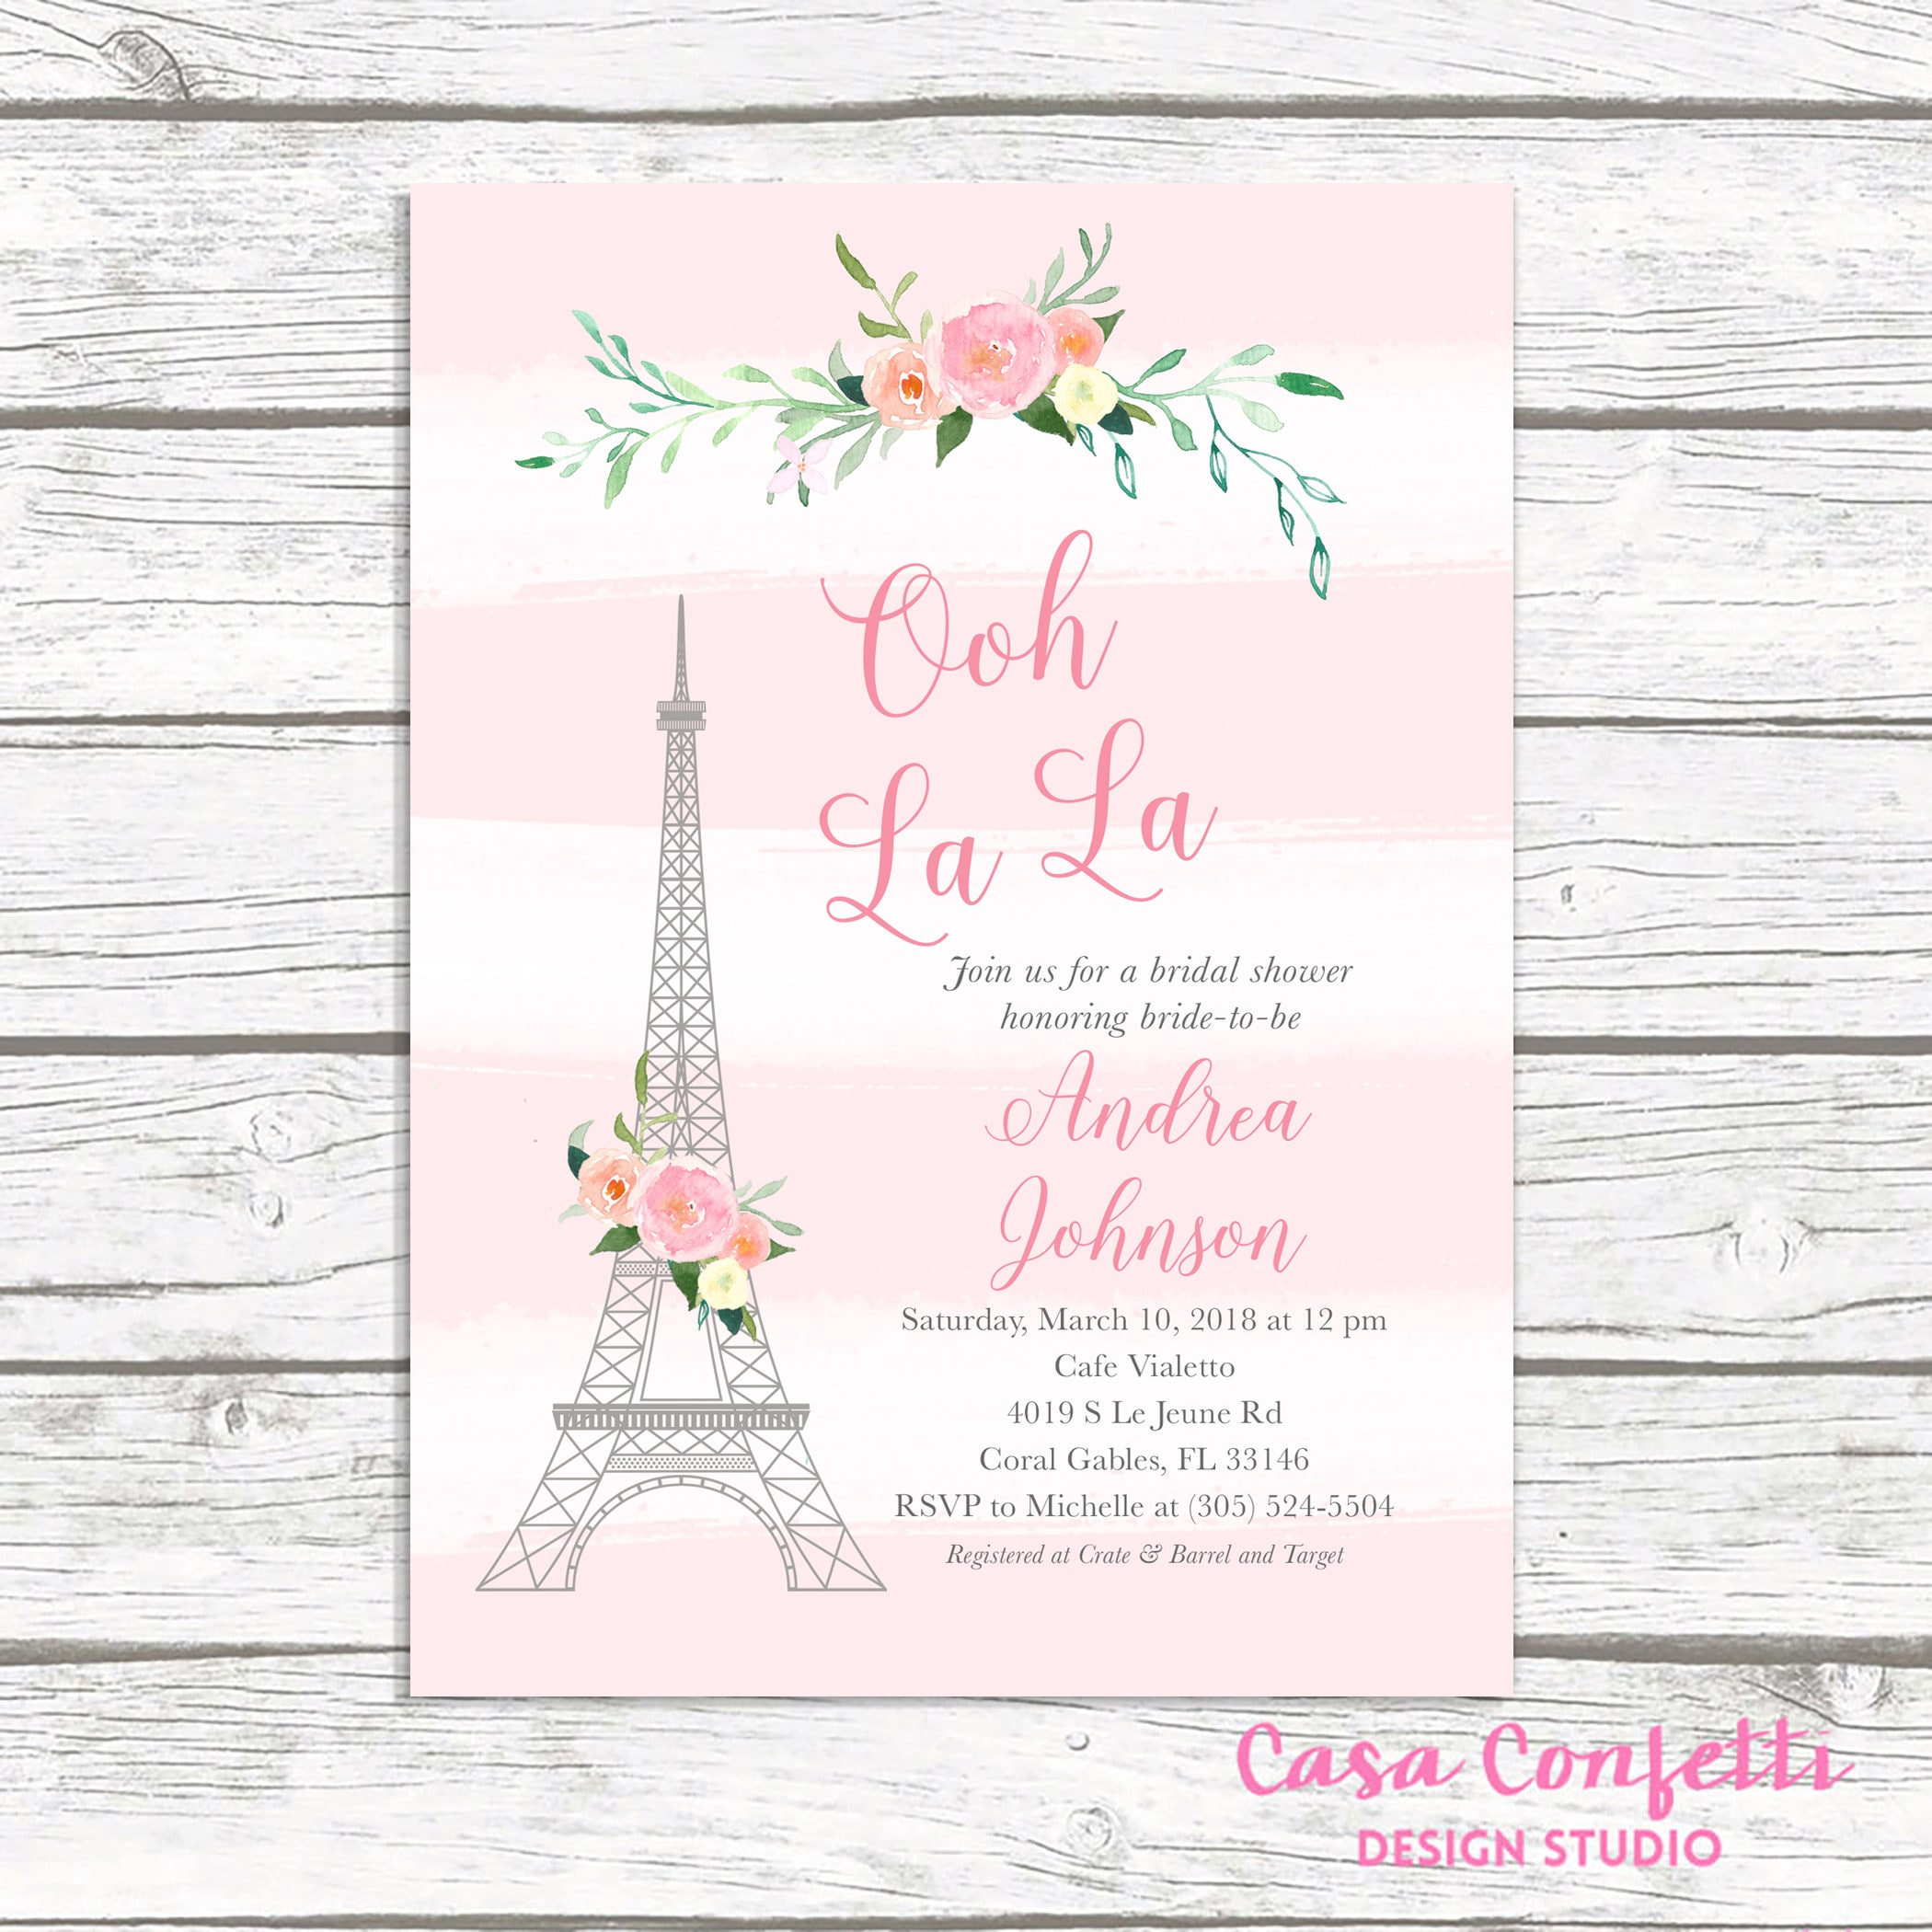 Paris bridal shower invitation french bridal shower invitation paris bridal shower invitation french bridal shower invitation eiffel tower bridal shower invitation ooh la la parisian themed invite filmwisefo